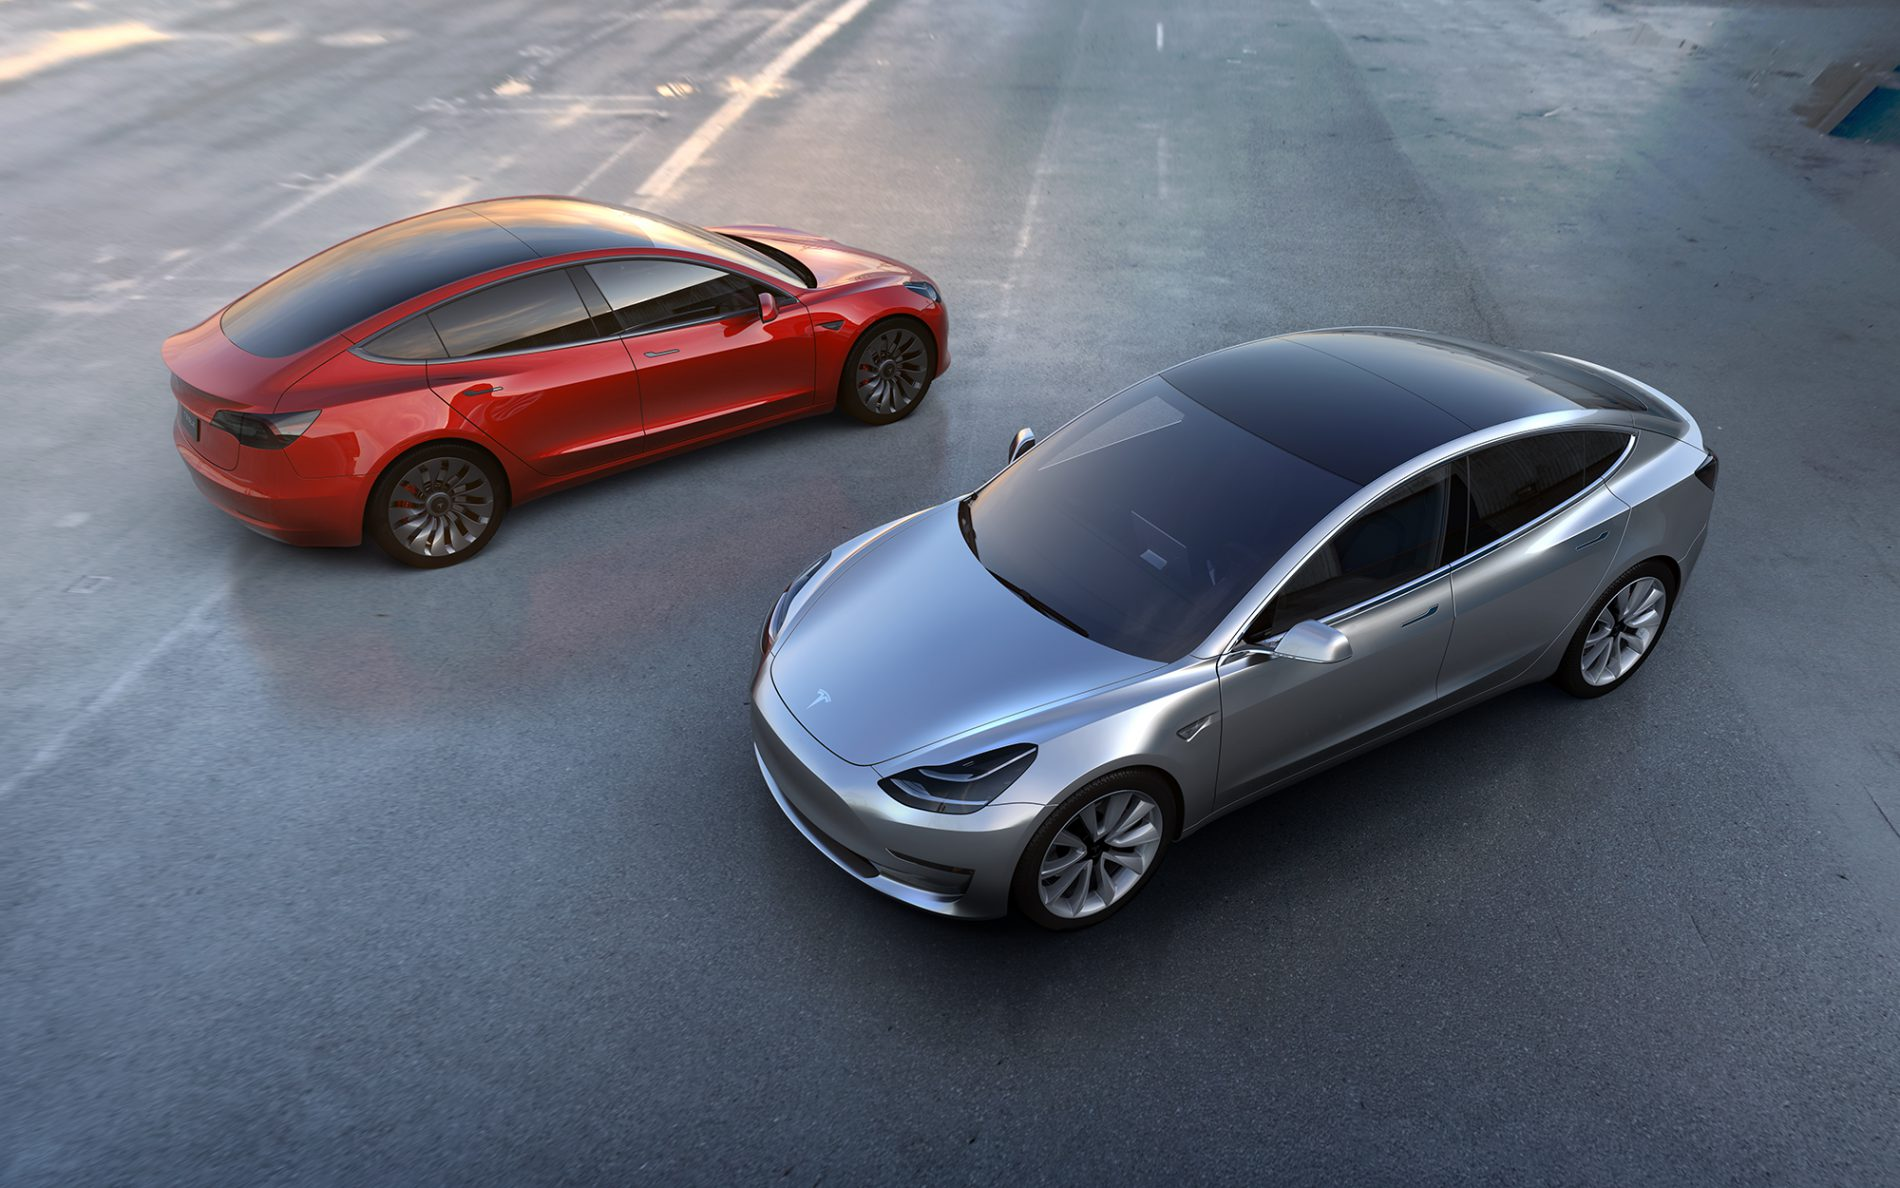 Revealed The Tesla Model 3 fers 215 Miles of Range and a Vague